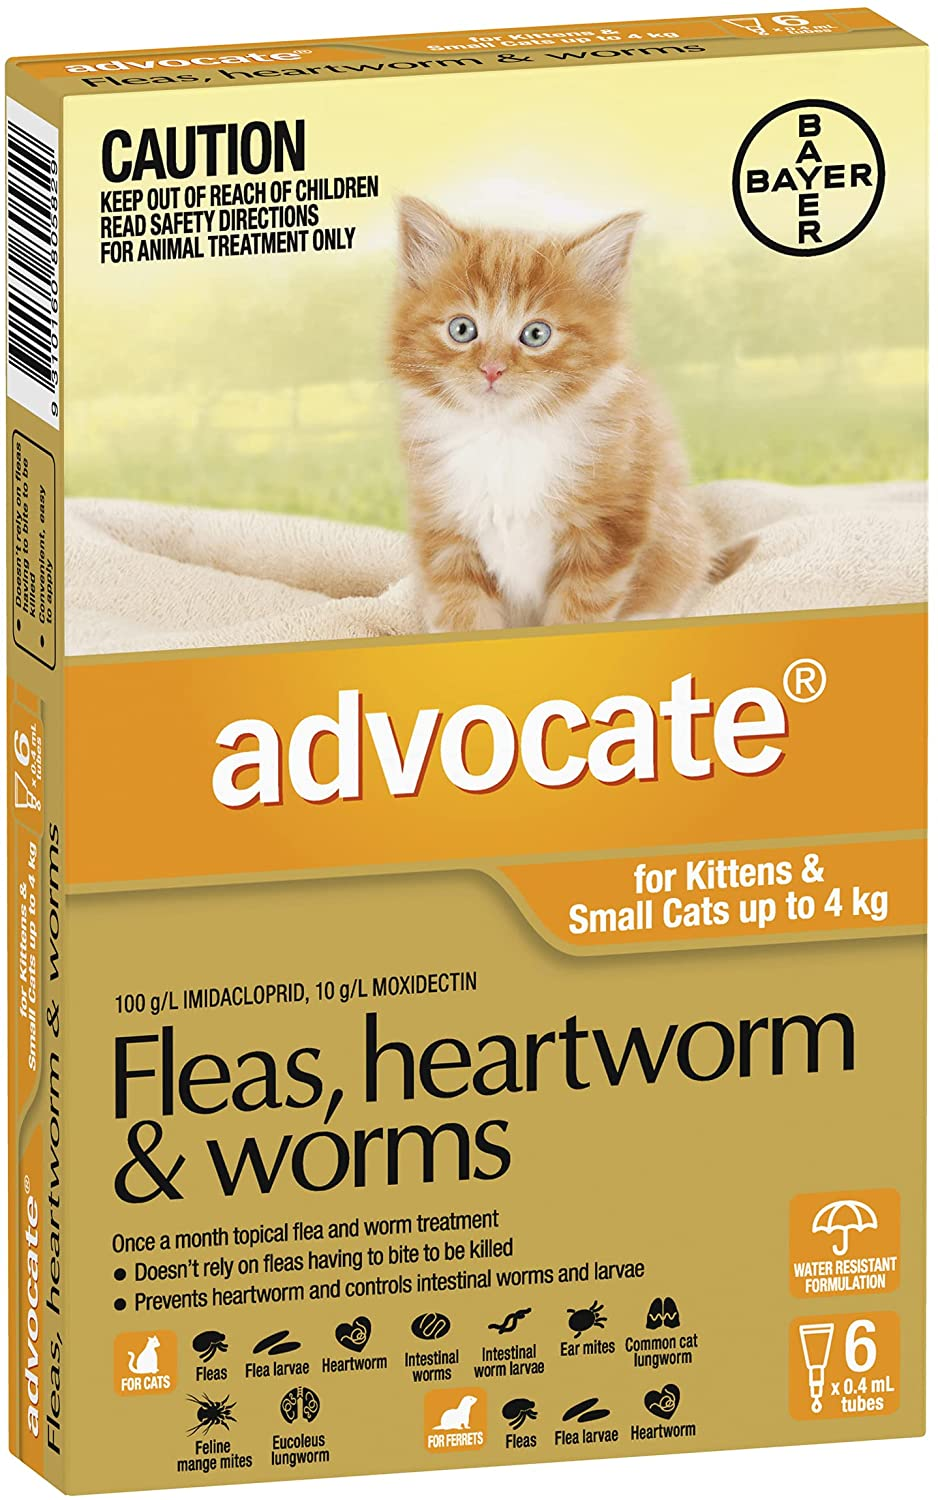 Advocate Flea Heartworm Treatment for Small Cats Up to 4 Kg Orange 6 Pack